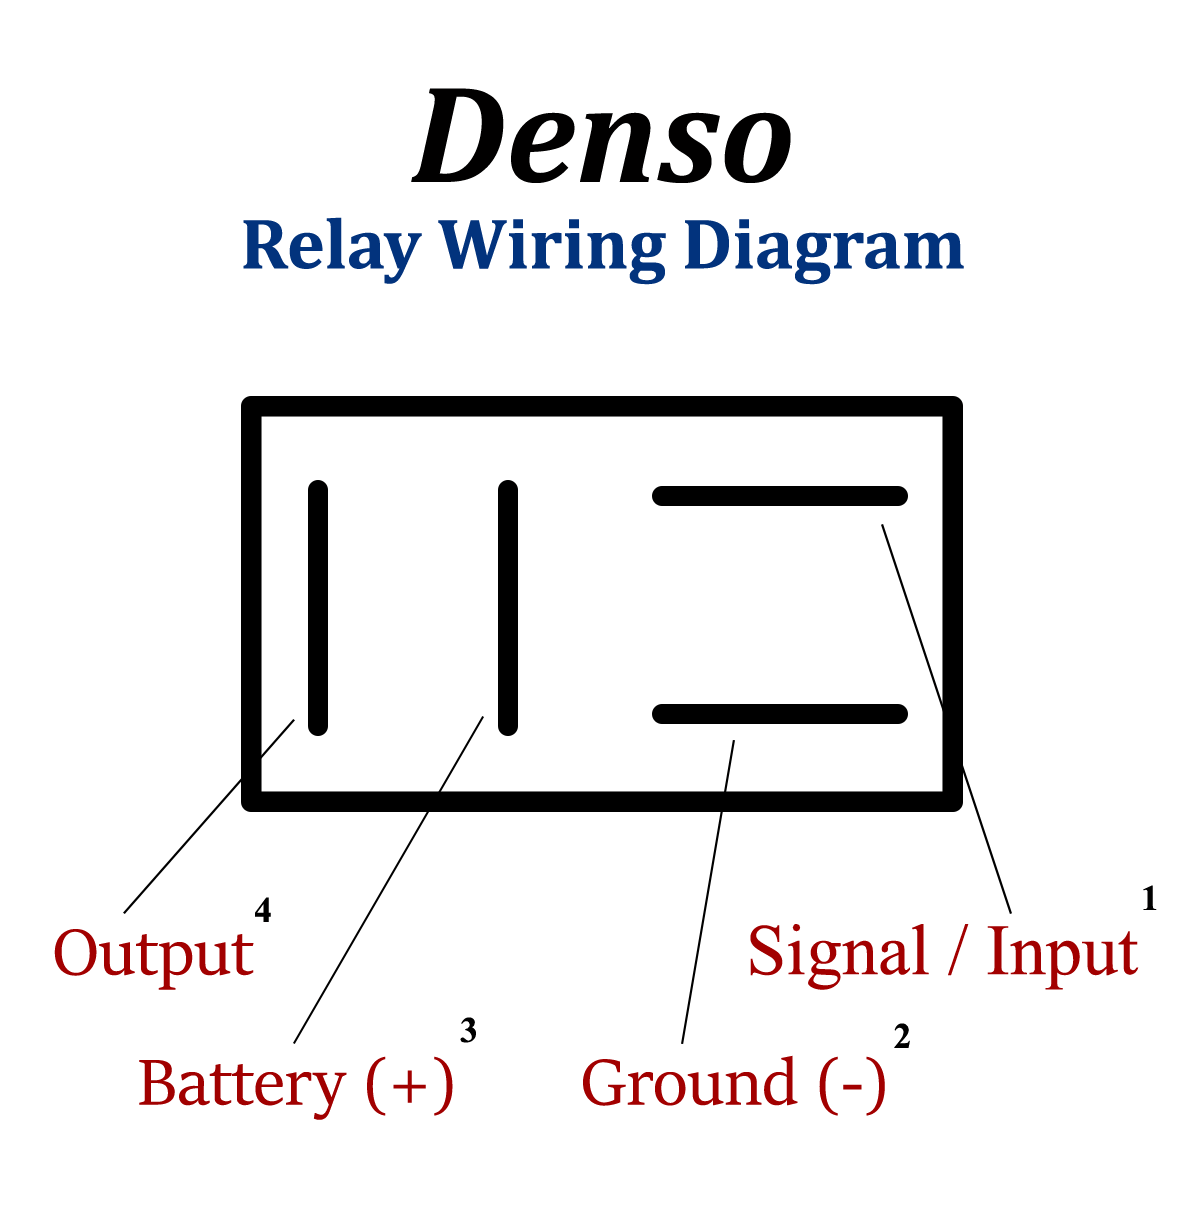 Denso Relay Wiring Diagram Benign Blog?resize\\\\\\\\\\\\\\\=297%2C300 automotive relay wiring diagram & best wiring diagram for a 5 changeover relay wiring diagram at nearapp.co